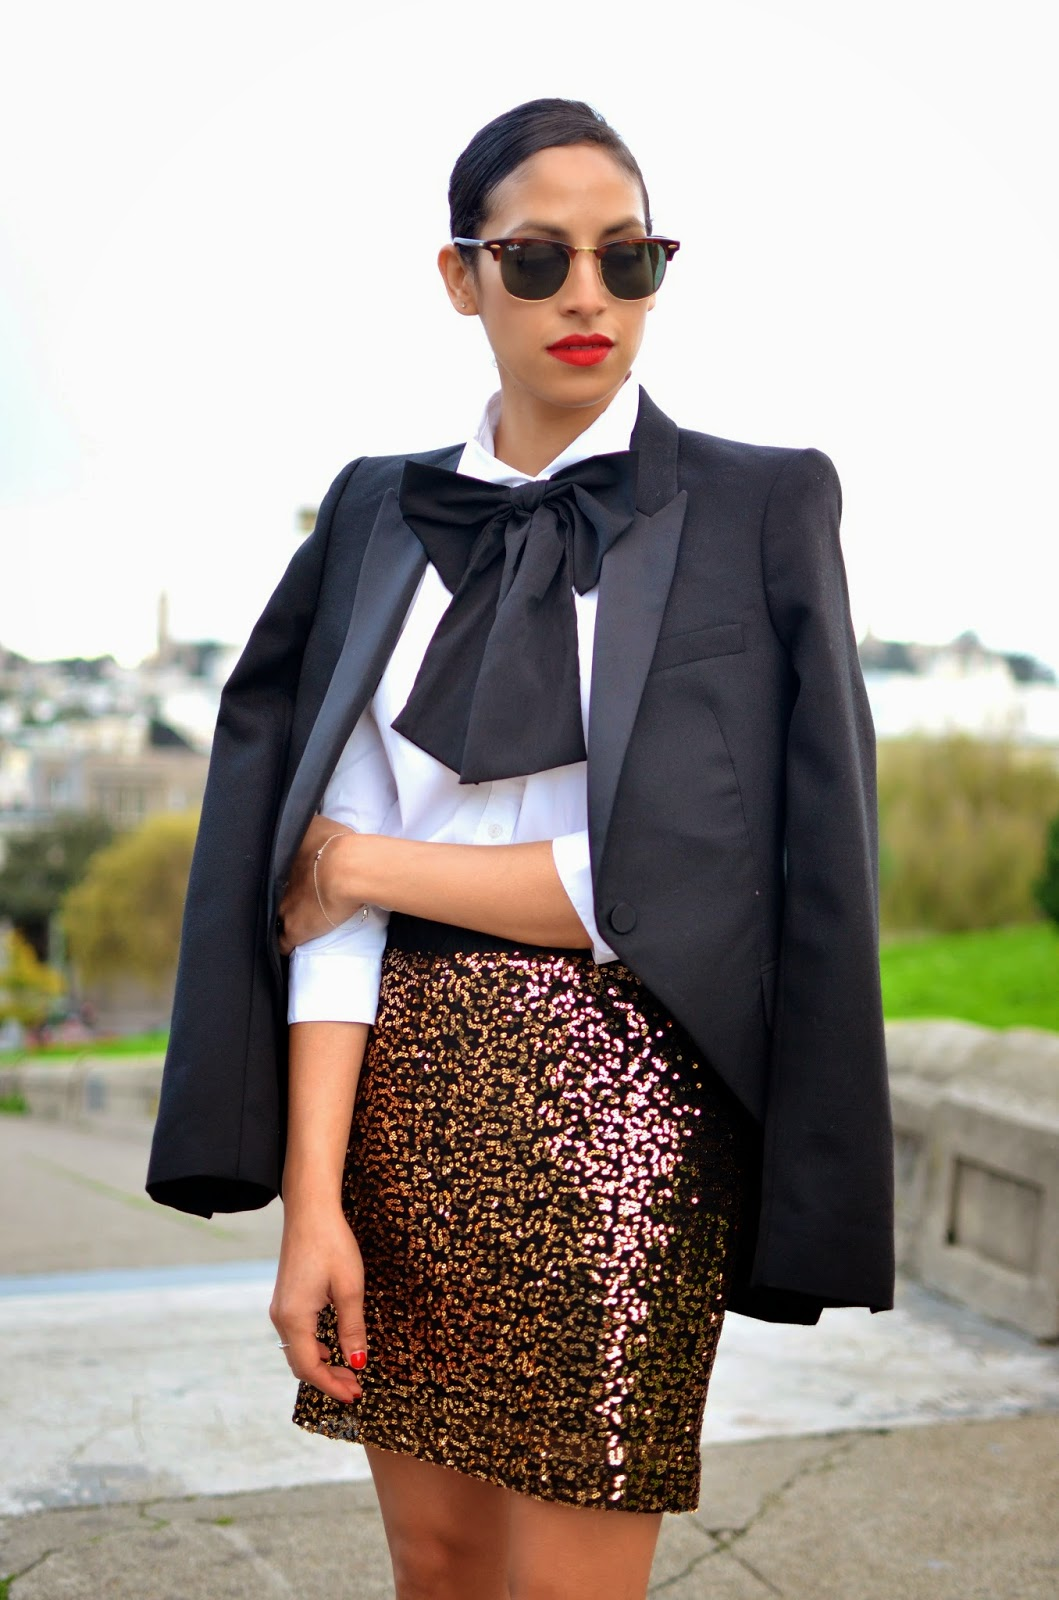 red lips, tuxedo jacket, SF style, NYE glam, holiday look, giant bowtie, preppy glam